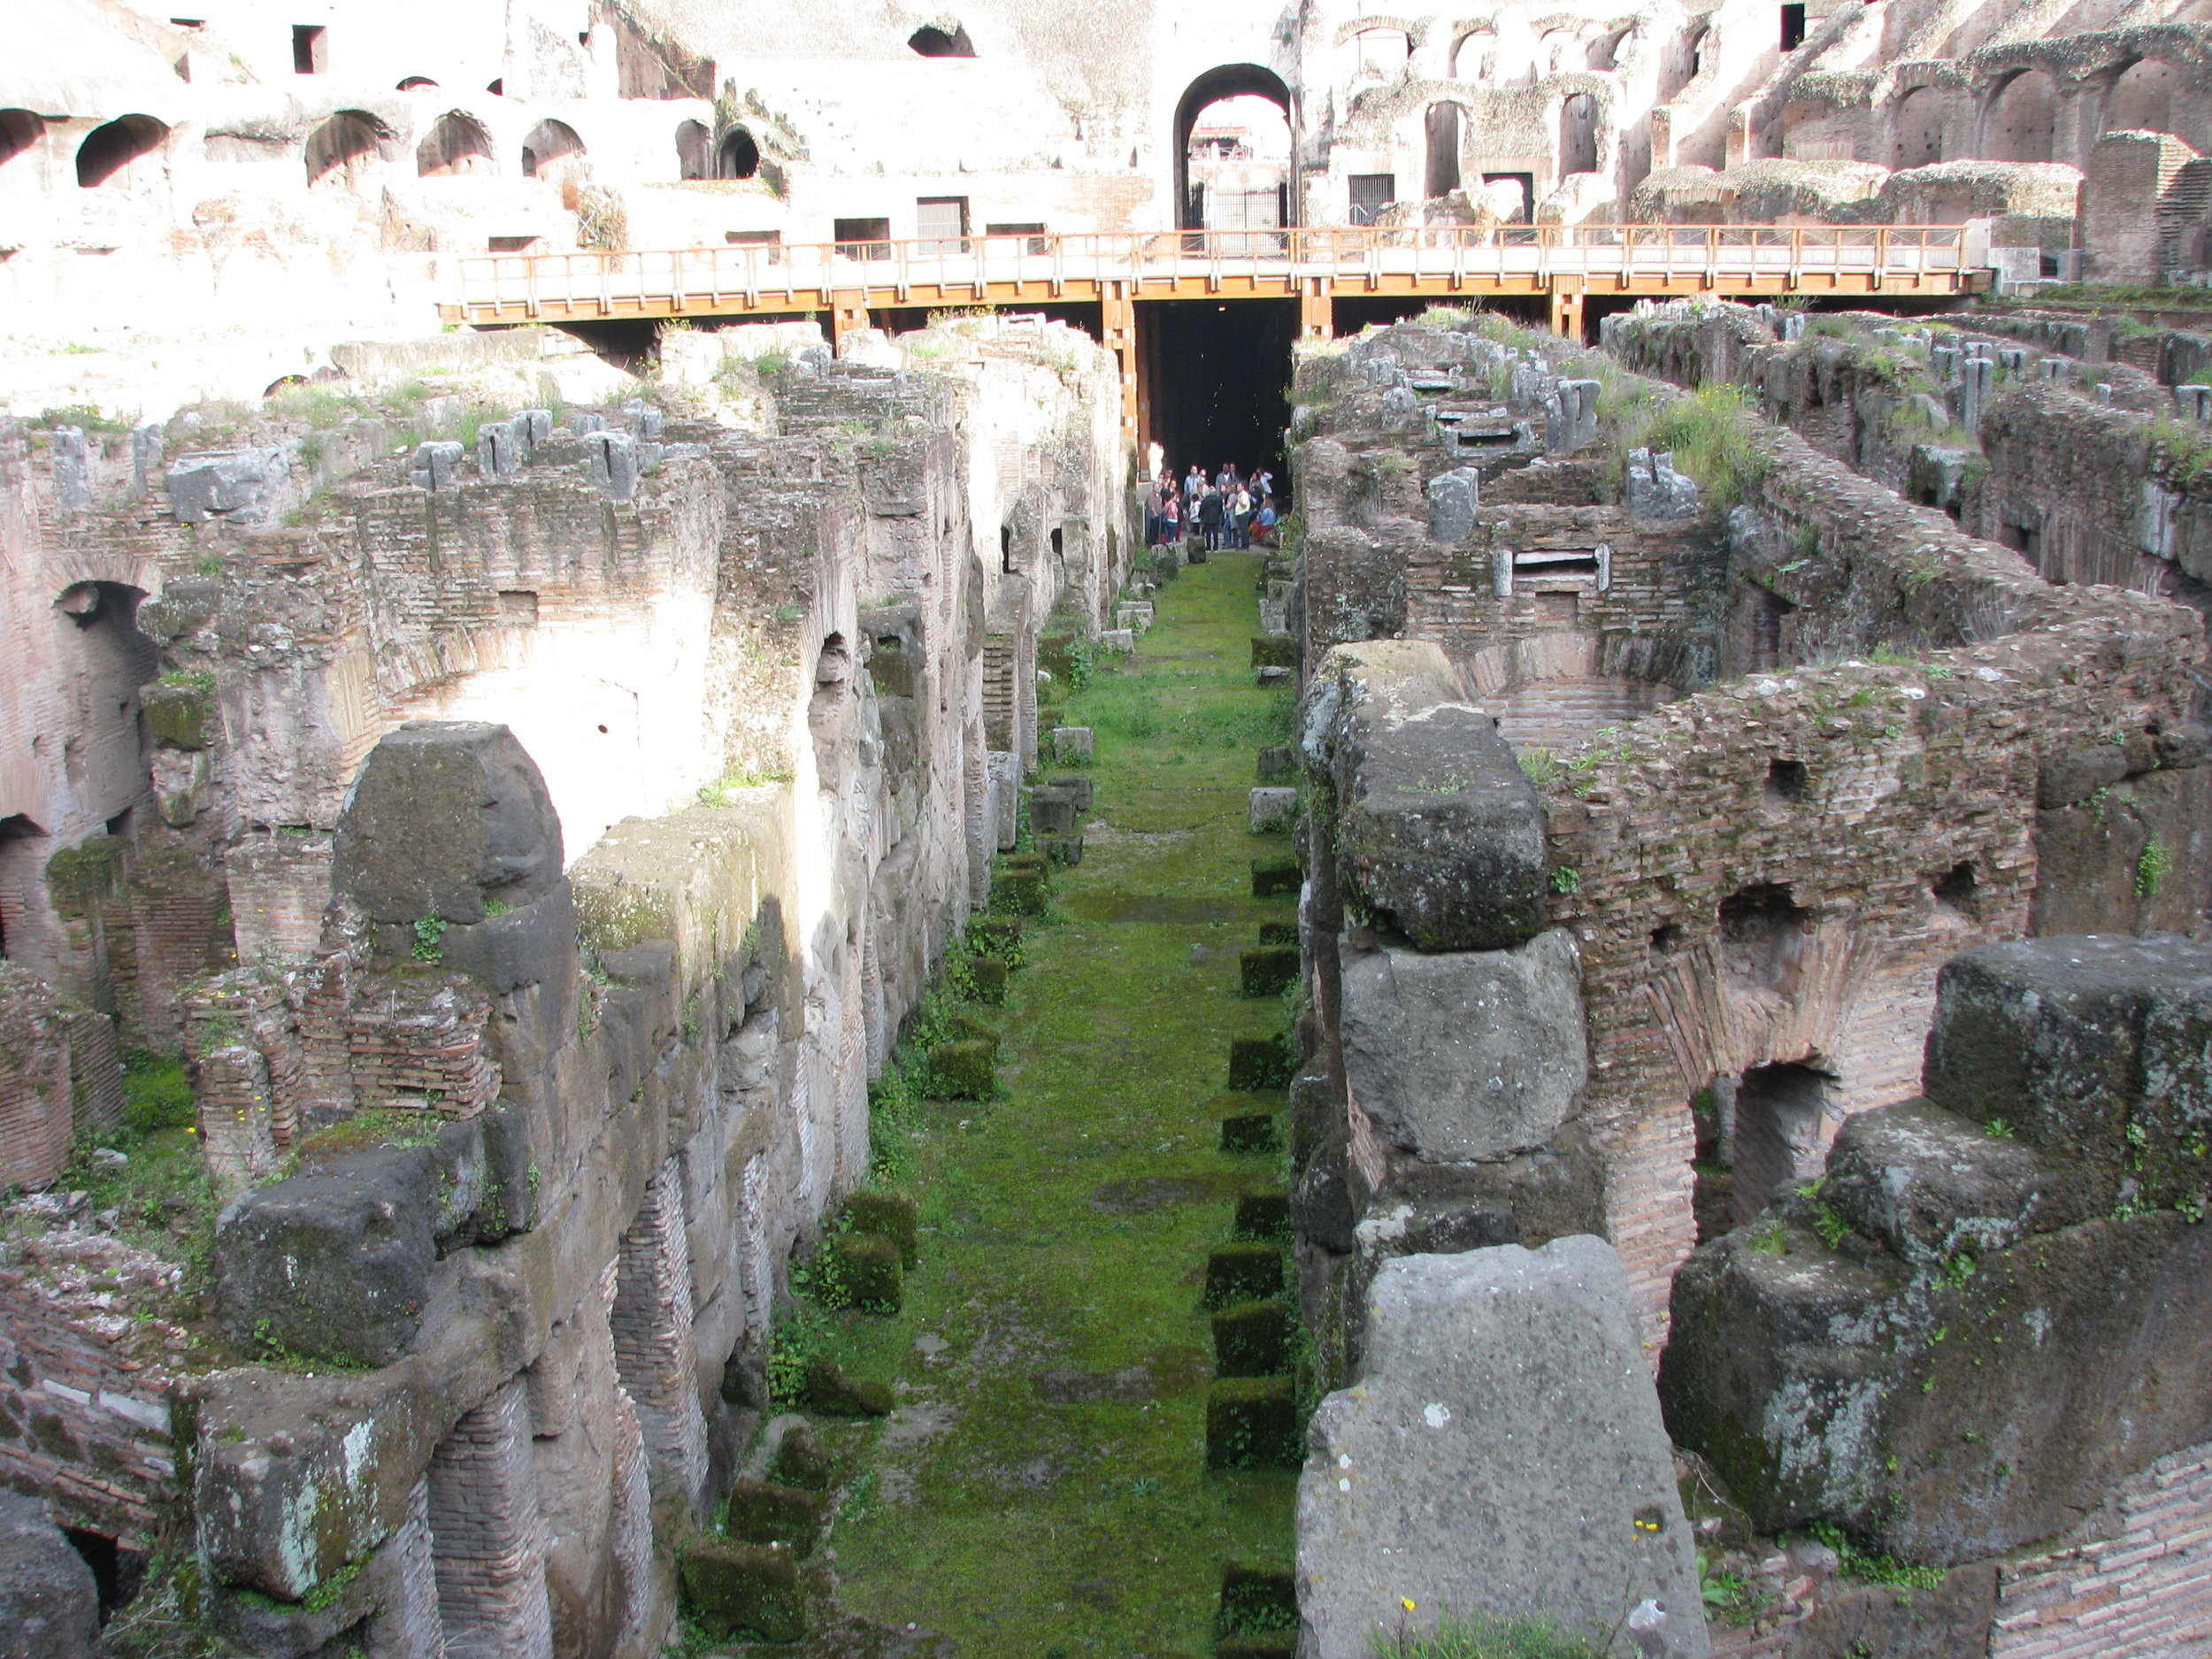 The area beneath the stage where the gladiators and animals were kept.